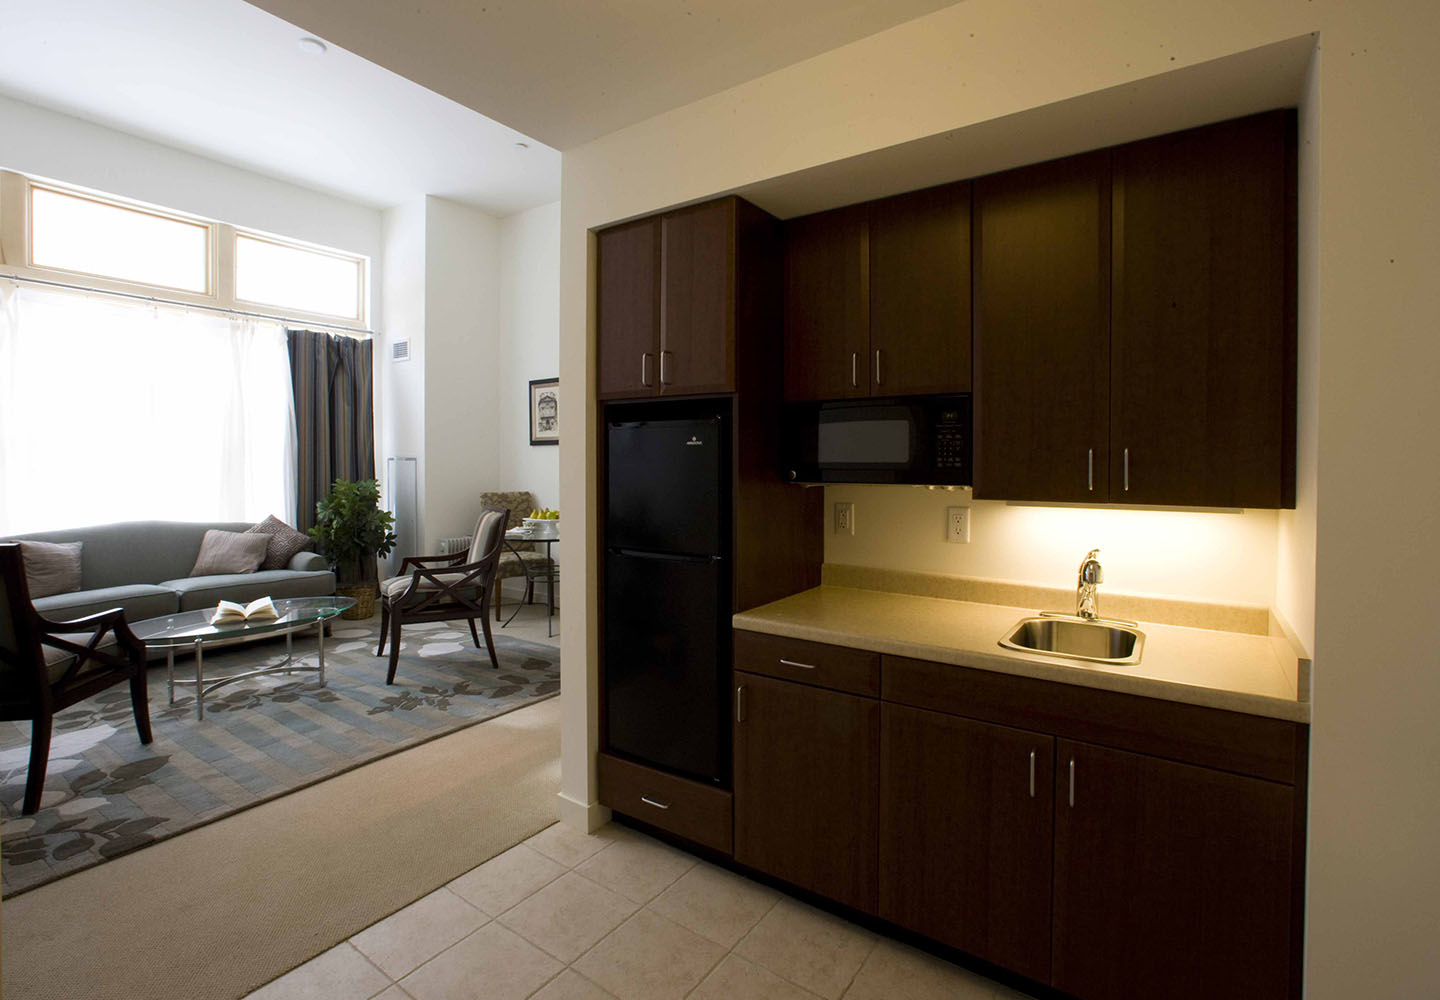 A kitchenette opens to a sunny living room in an assisted living apartment at NewBridge on the Charles.